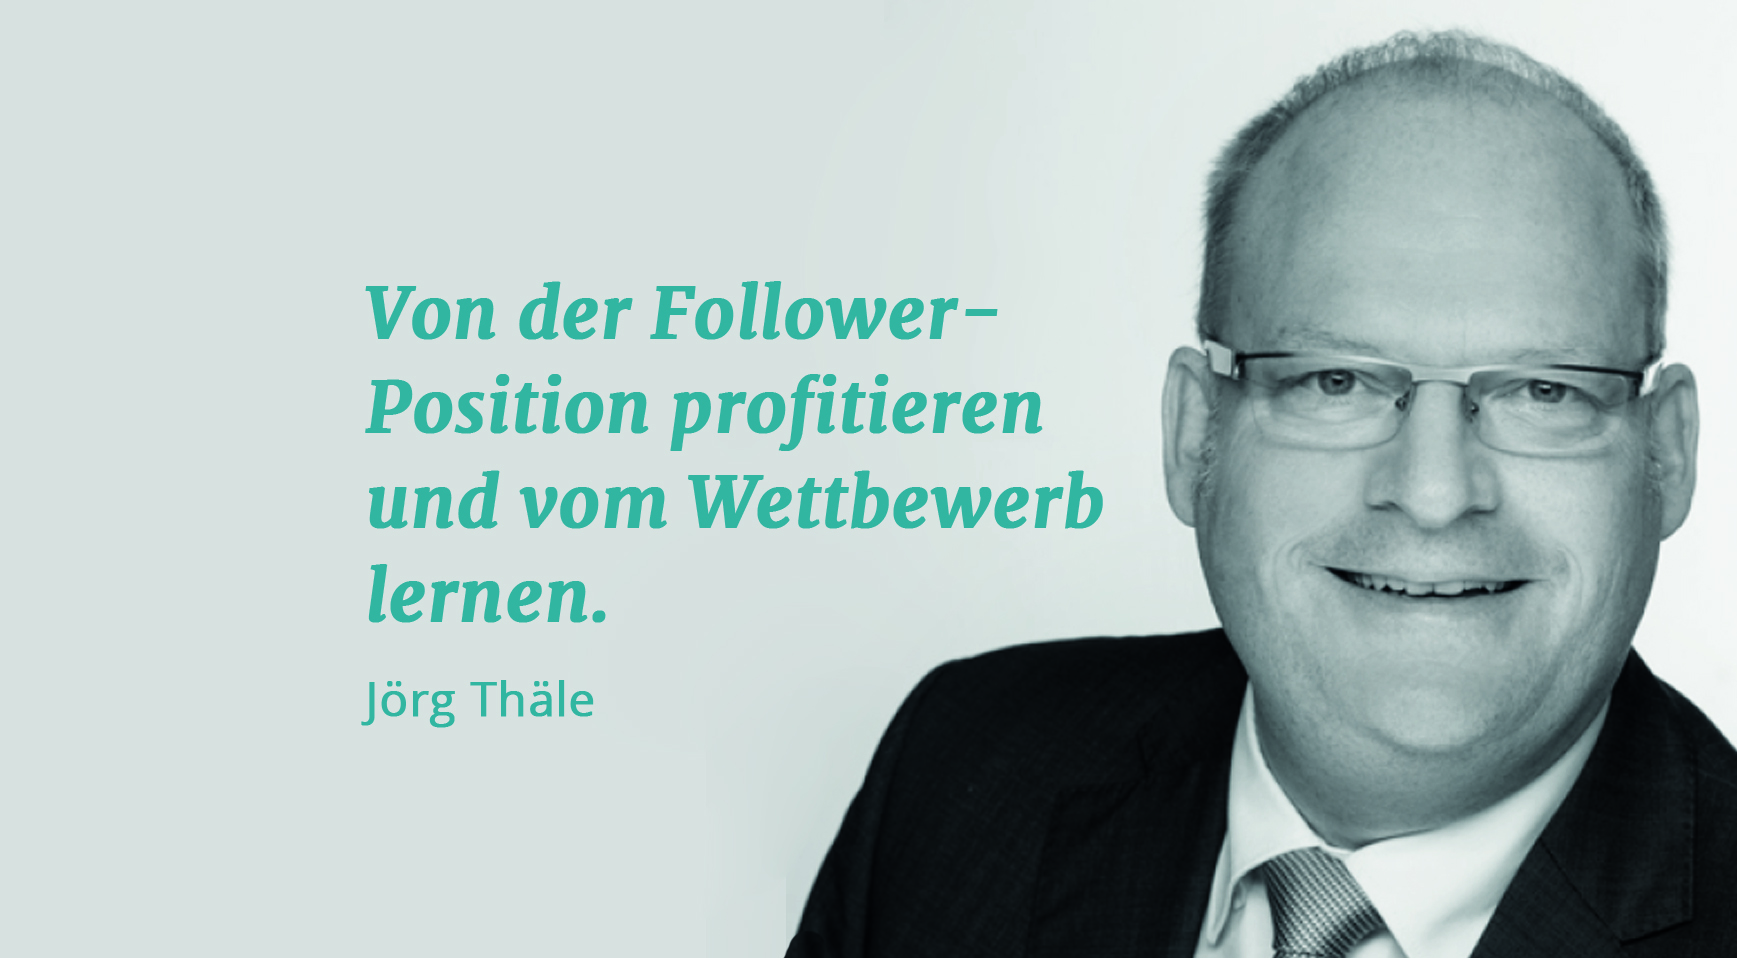 AXXCON Follower-Position Autozulieferer holt auf